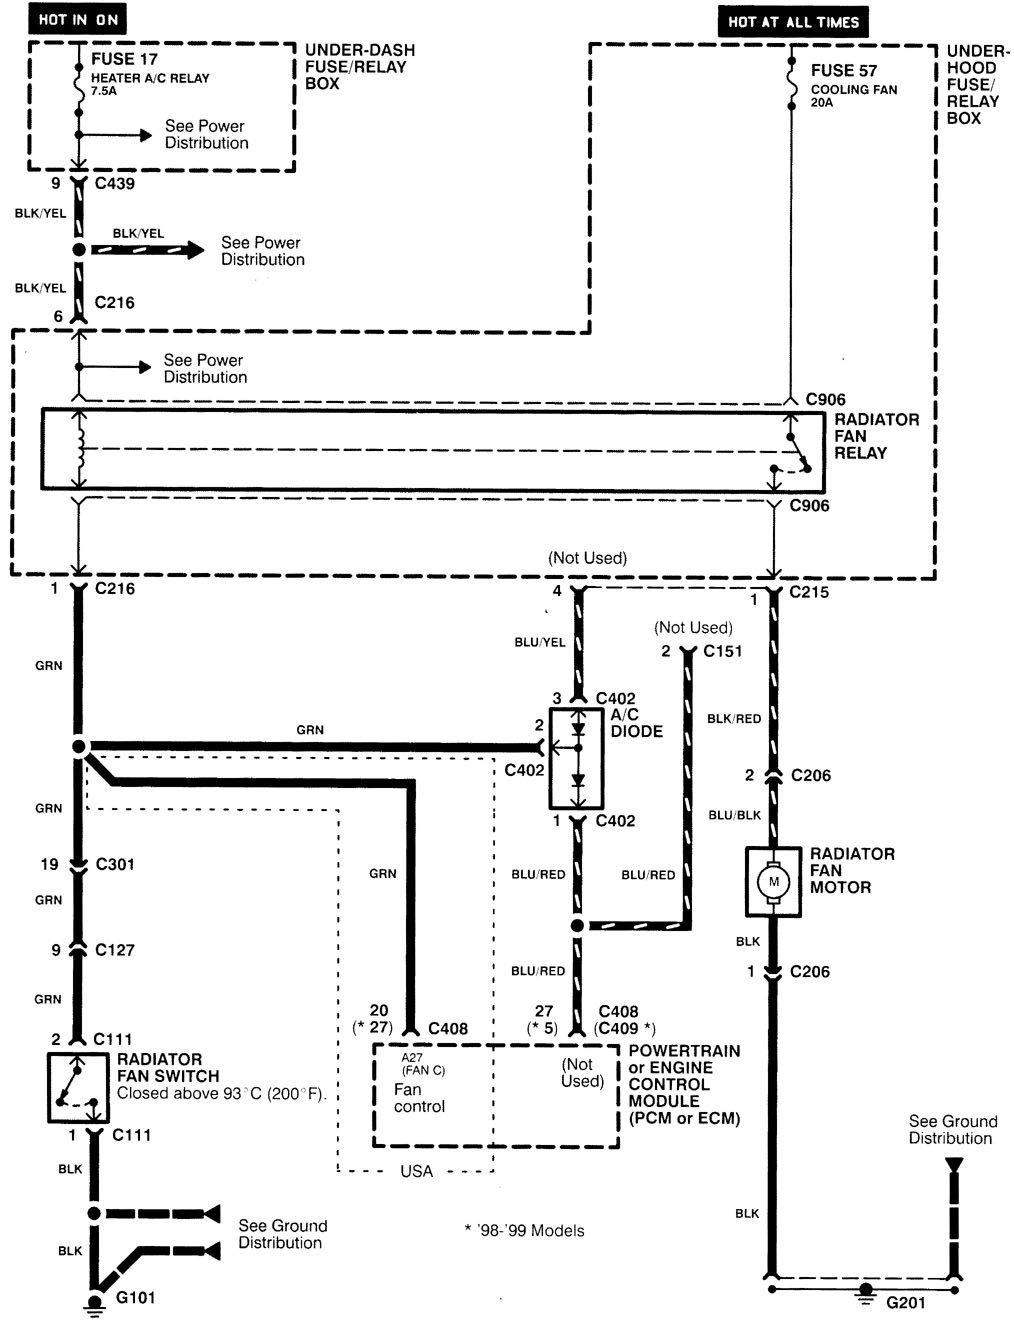 01 Integra Fuse Diagram Wiring Schematic Schematics Wiring Data \u2022 98  Integra Gsr Fuse Box Diagram